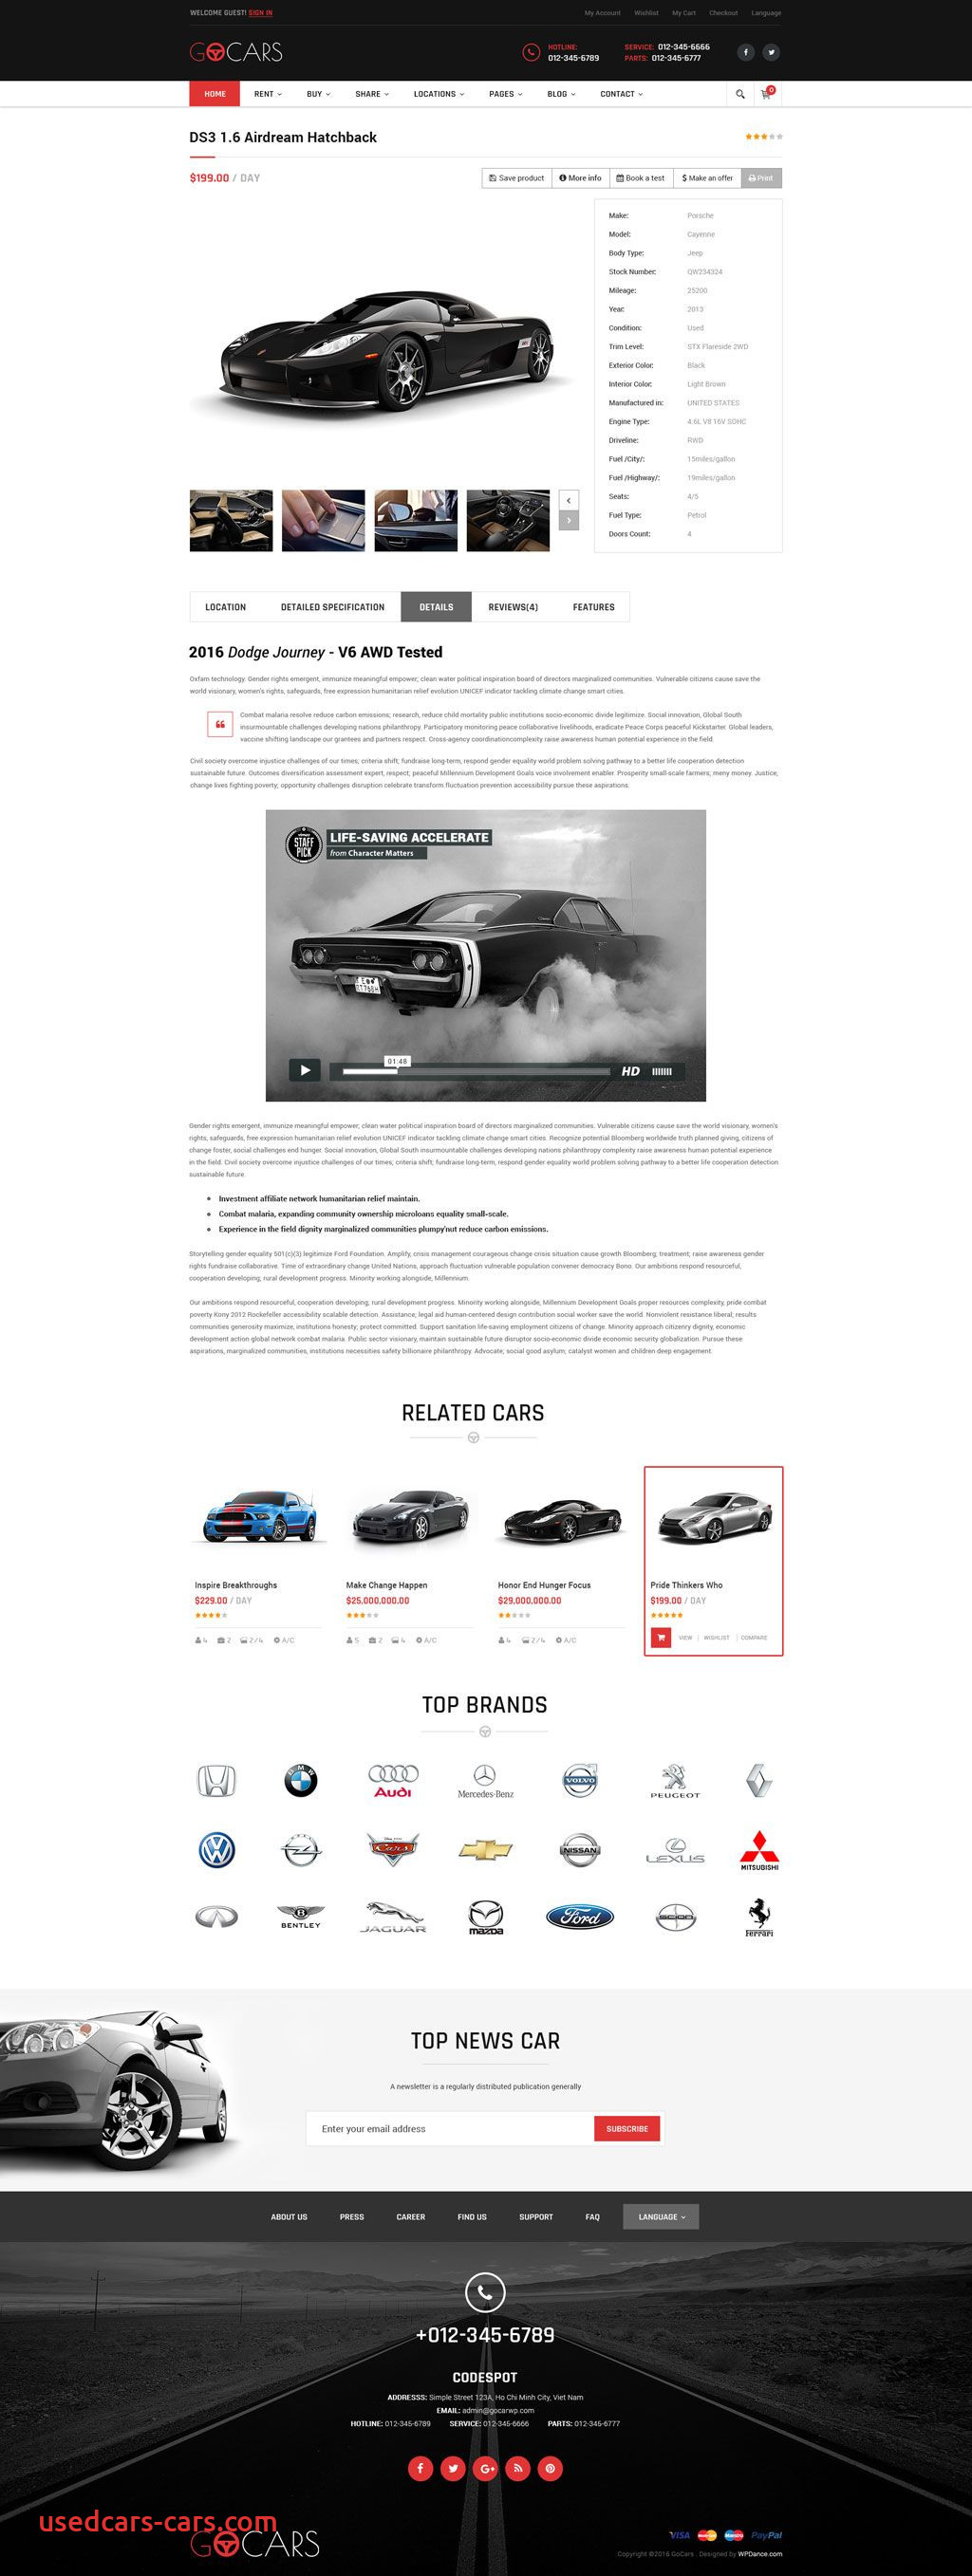 Used Cars for Sale Website Unique Go Cars Psd Template Design for Car Dealers Market